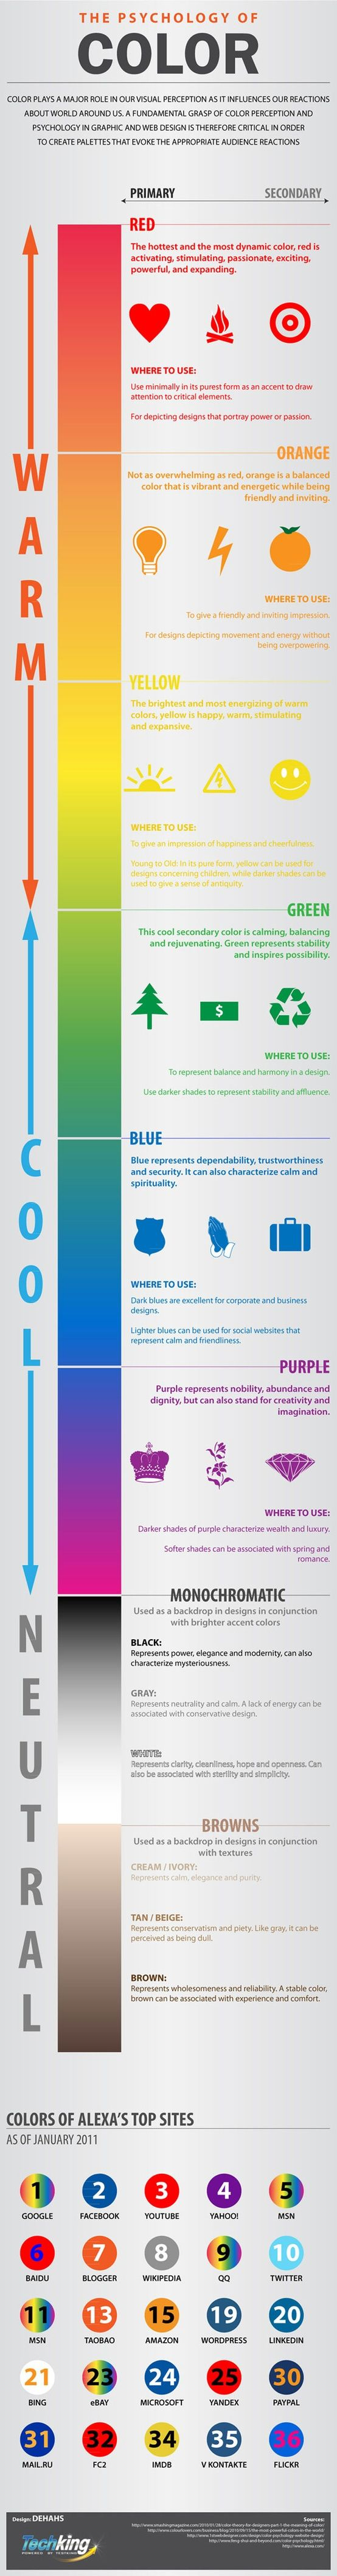 Image Consulting / the psychology of color @Emily Brown